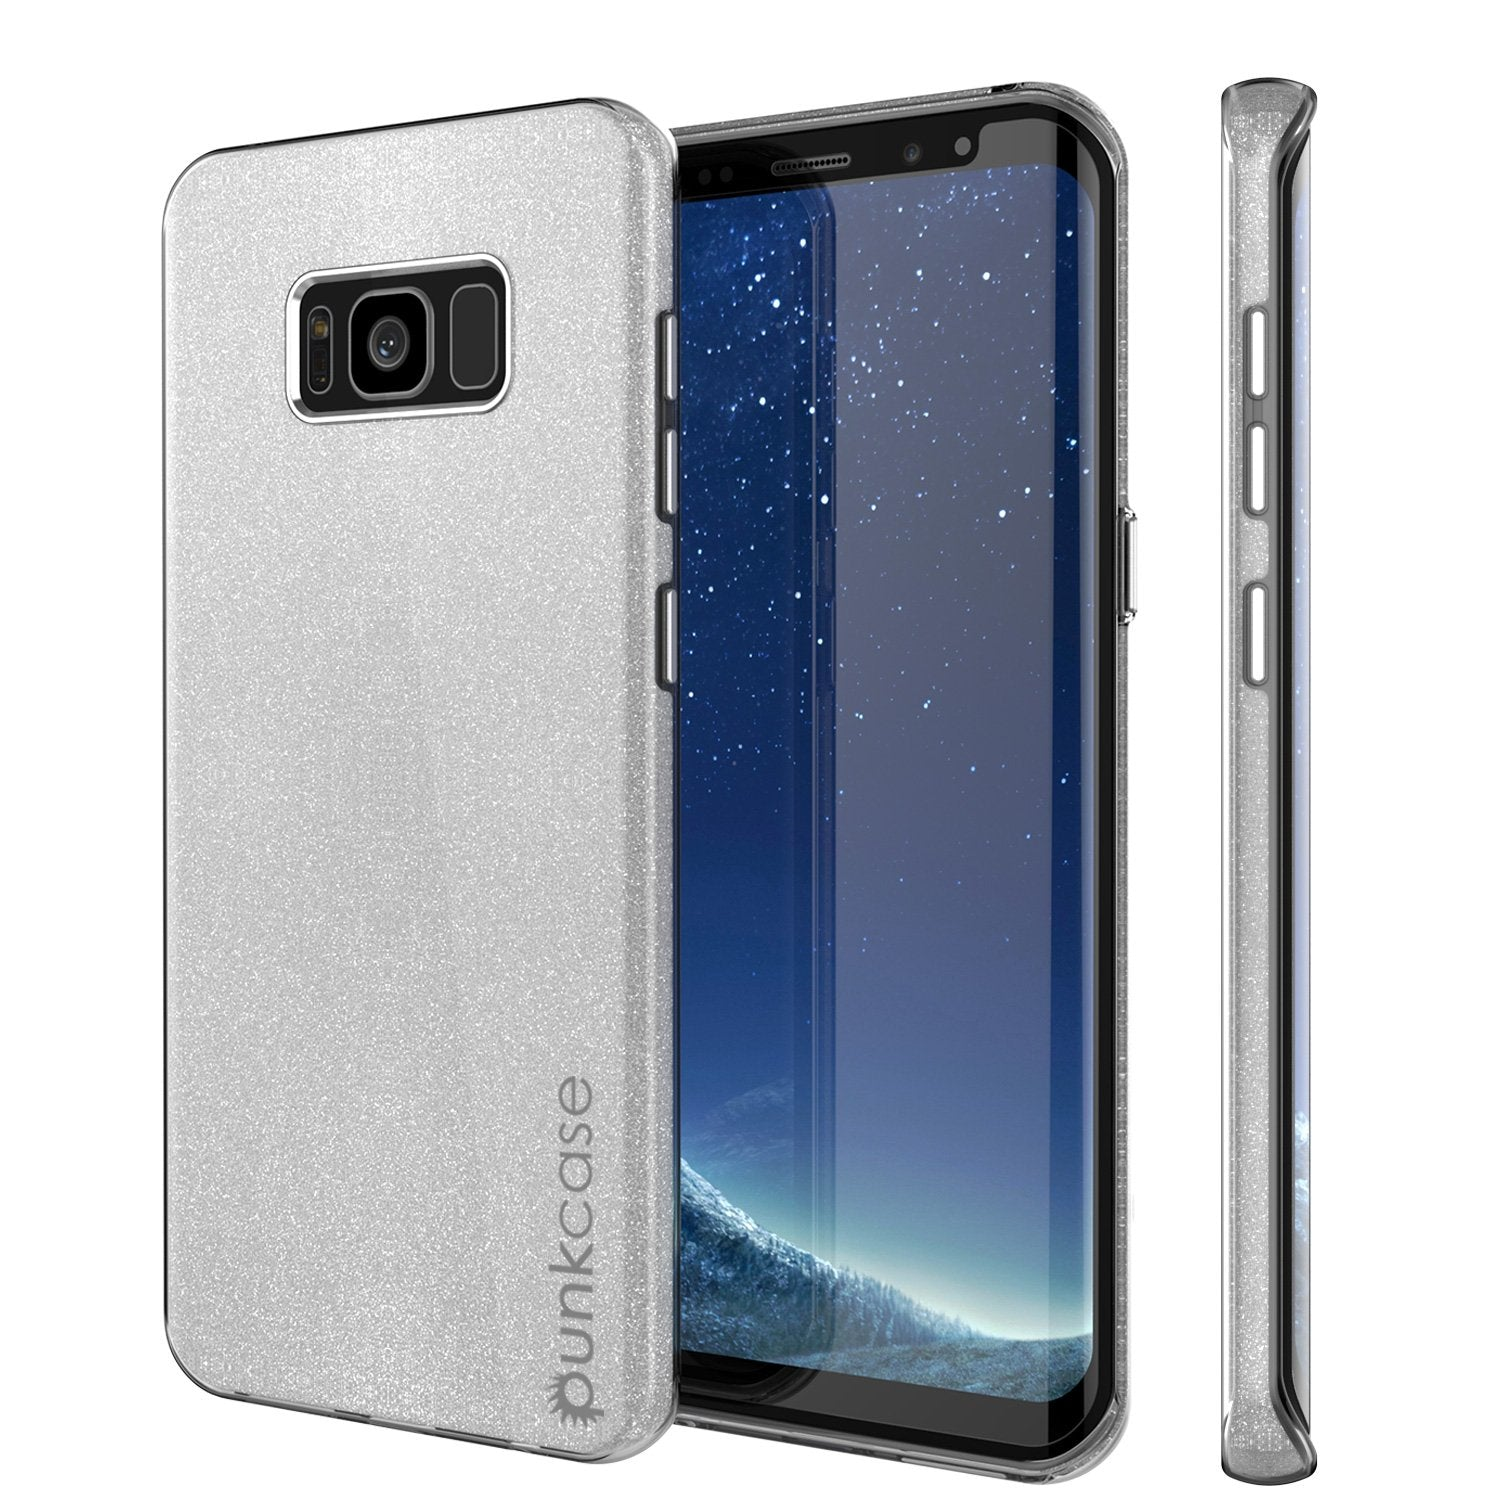 Galaxy S8 Case, Punkcase Galactic 2.0 Series Ultra Slim Protective Armor TPU Cover w/ PunkShield Screen Protector | Lifetime Exchange Warranty | Designed for Samsung Galaxy S8 [Silver]